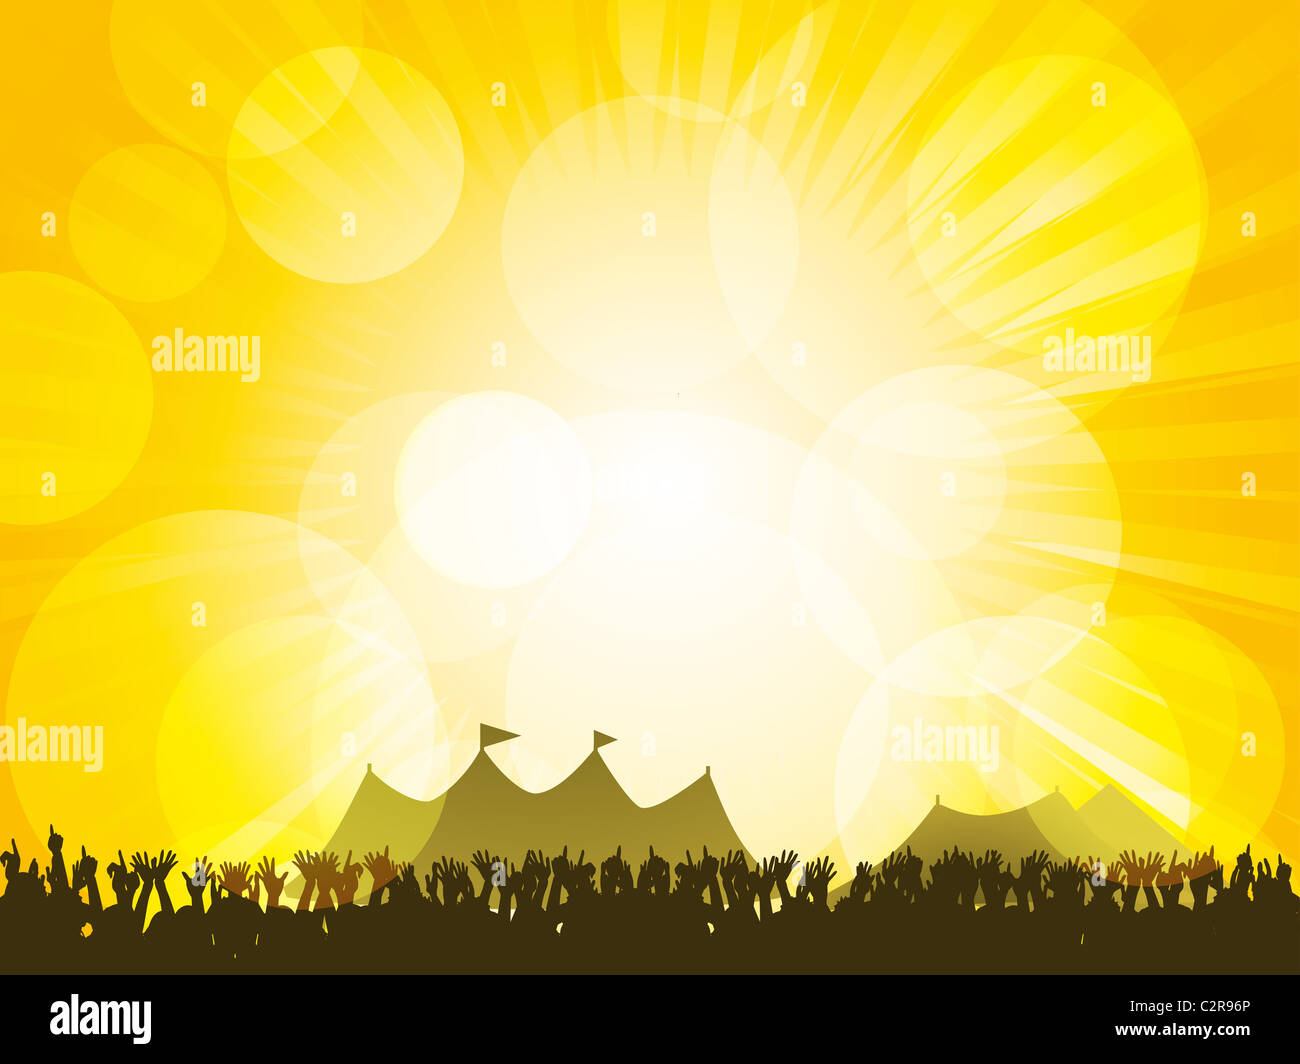 Crowd partying in front of festival tents with a glowing yellow sky - Stock Image